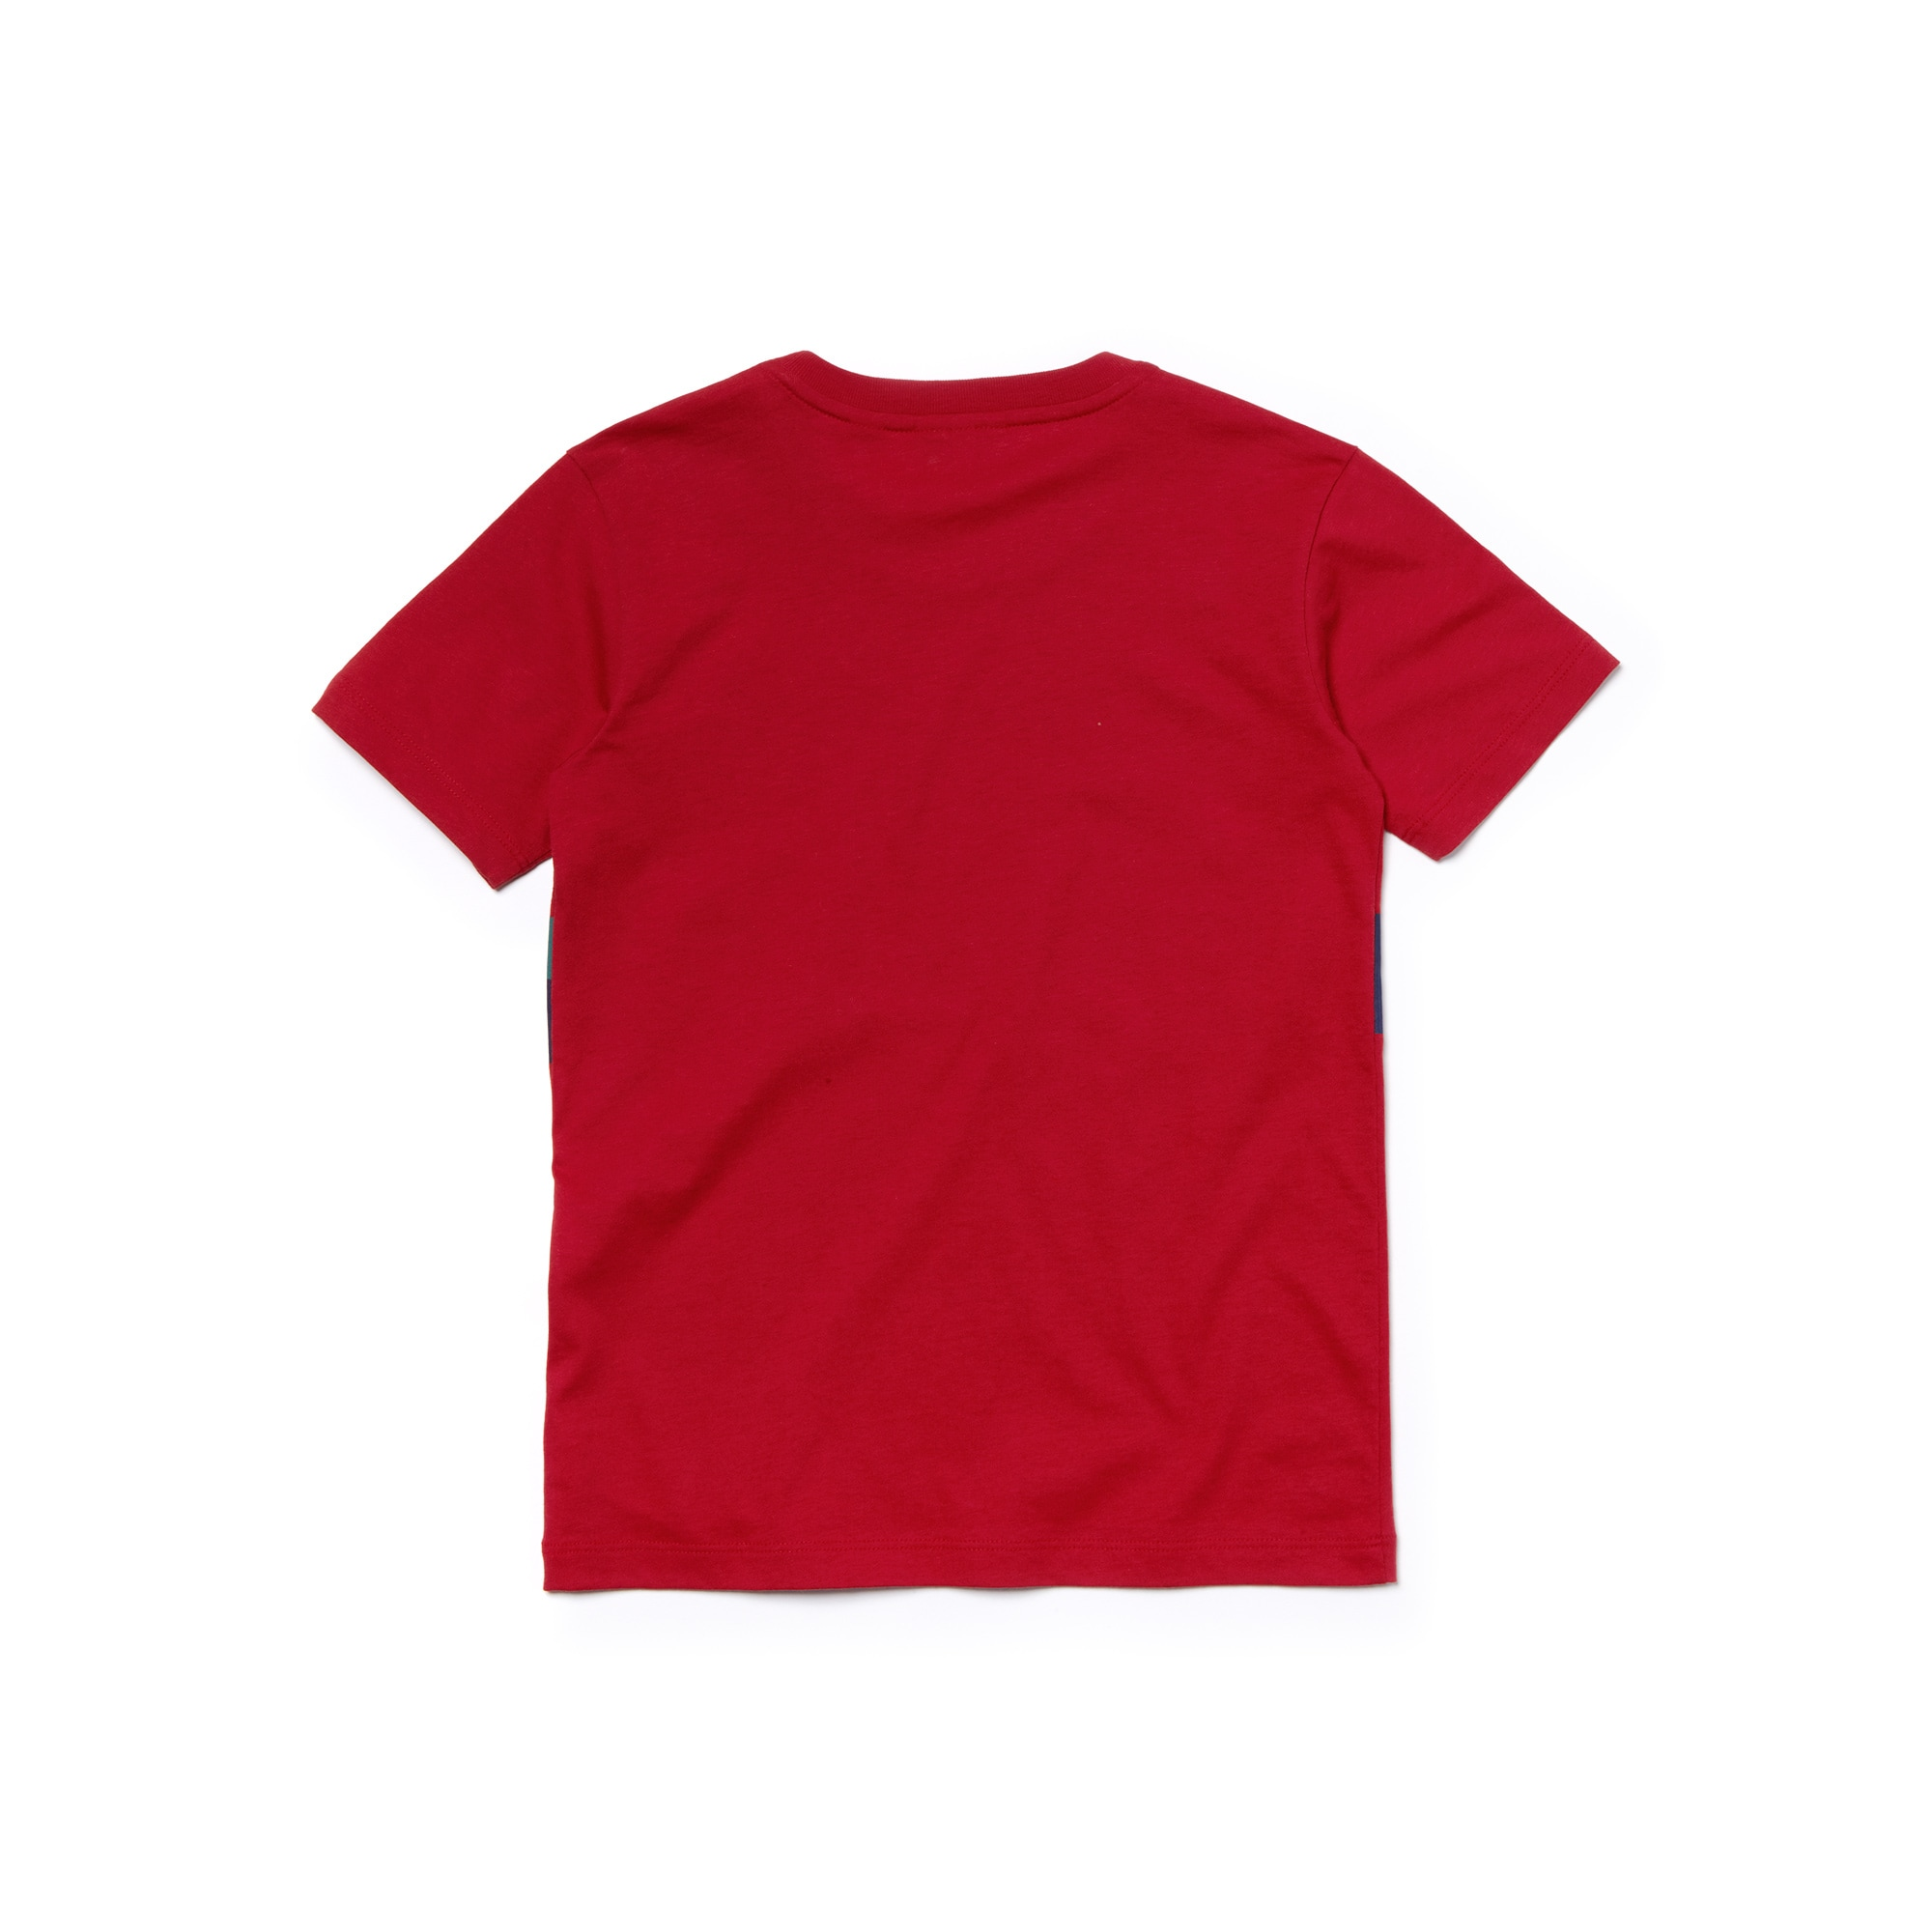 Boys' Crew Neck Ready to Play Cotton Jersey T-shirt